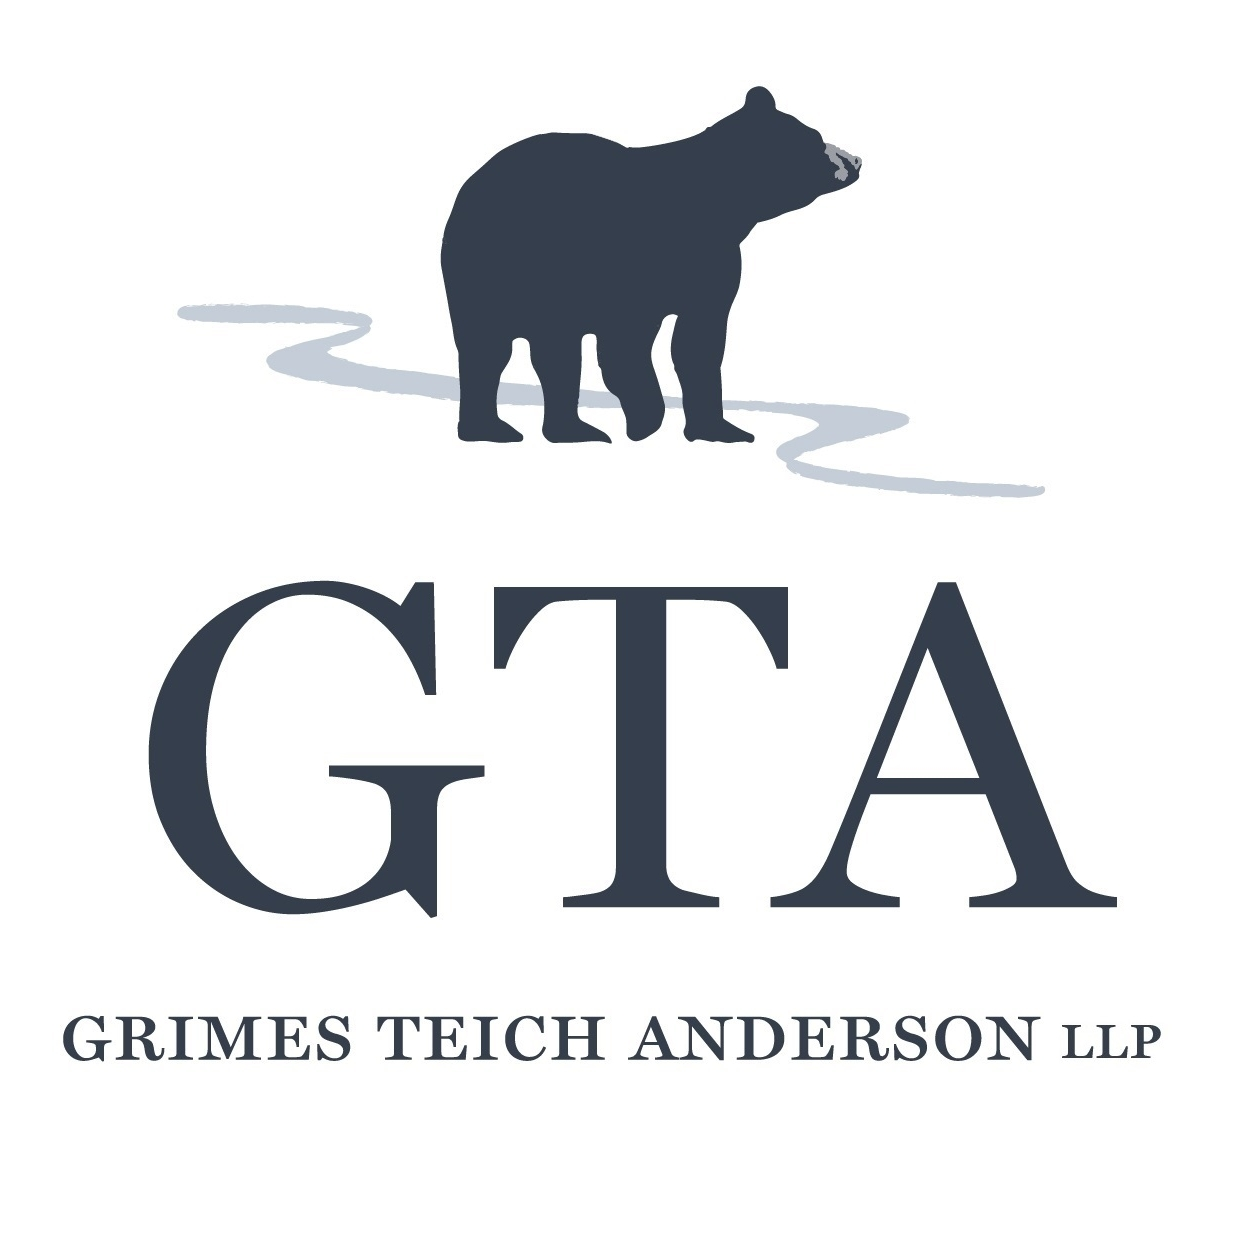 Grimes Teich Anderson LLP